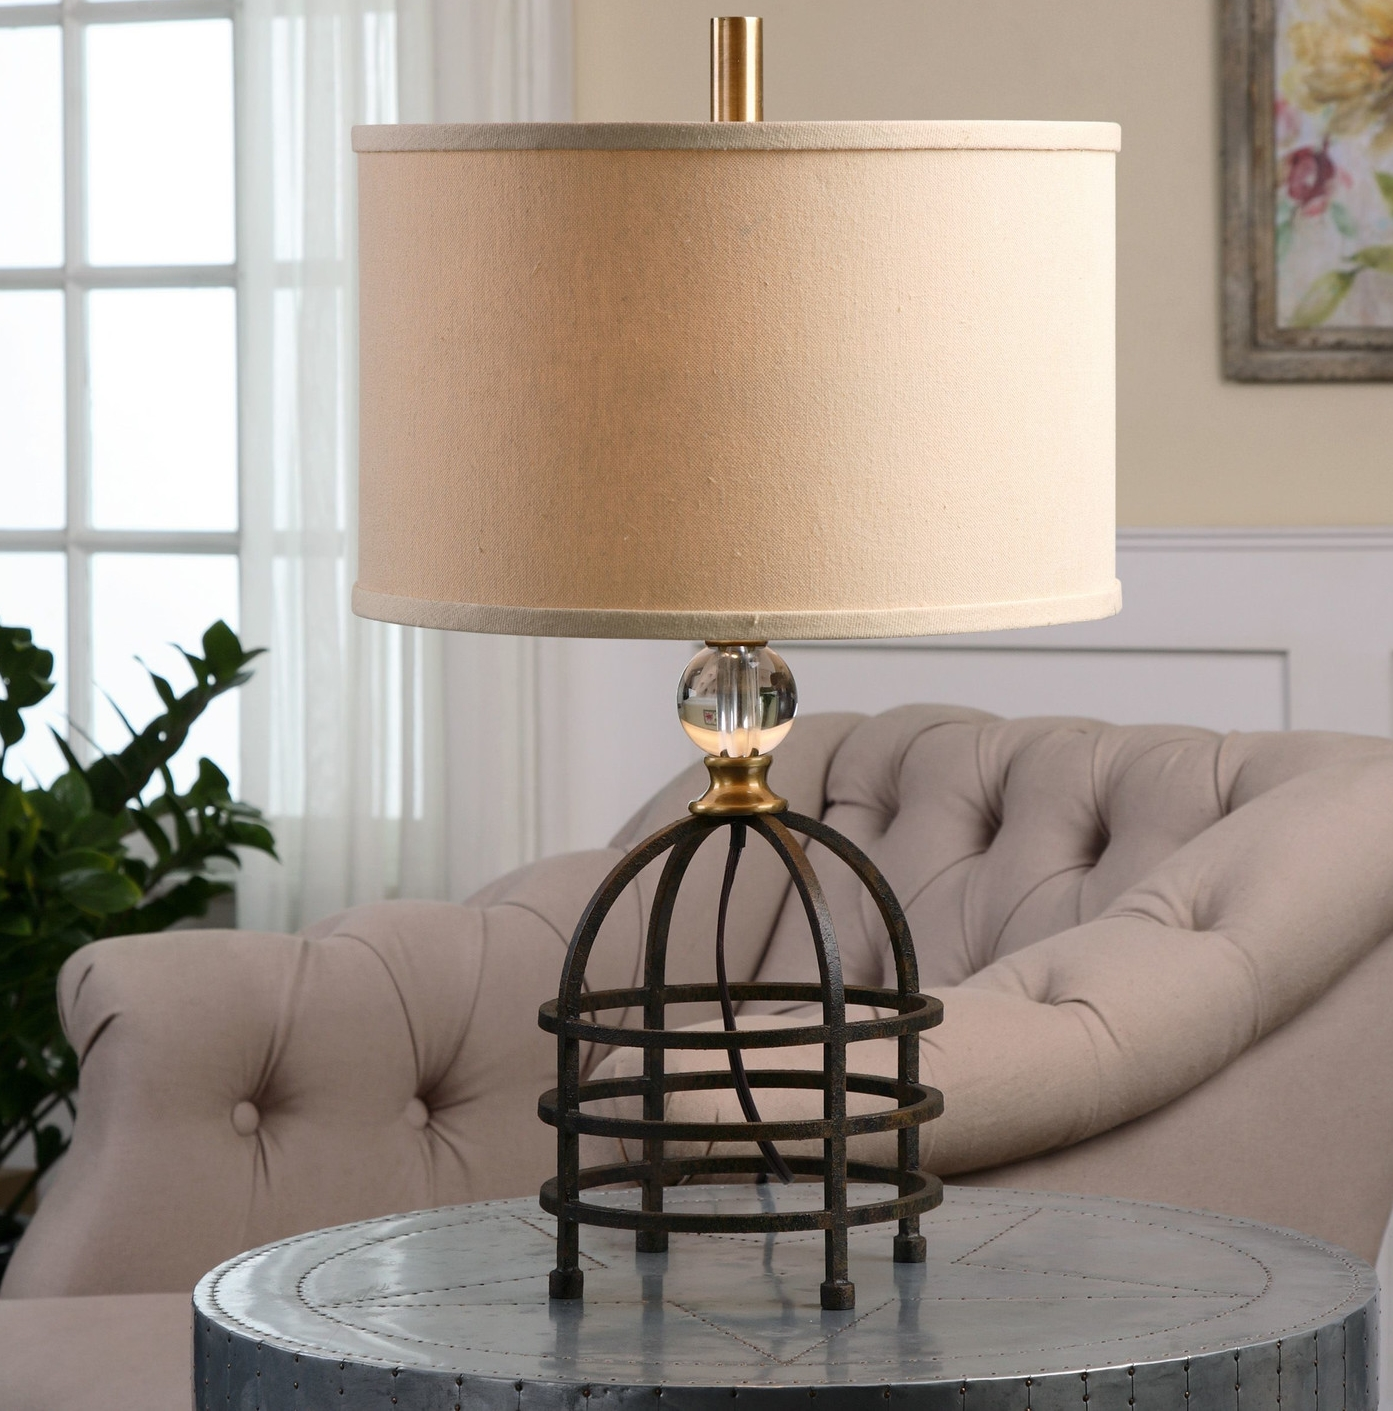 Ladonia-23-H-Table-Lamp-with-Drum-Shade-29183-1.jpg